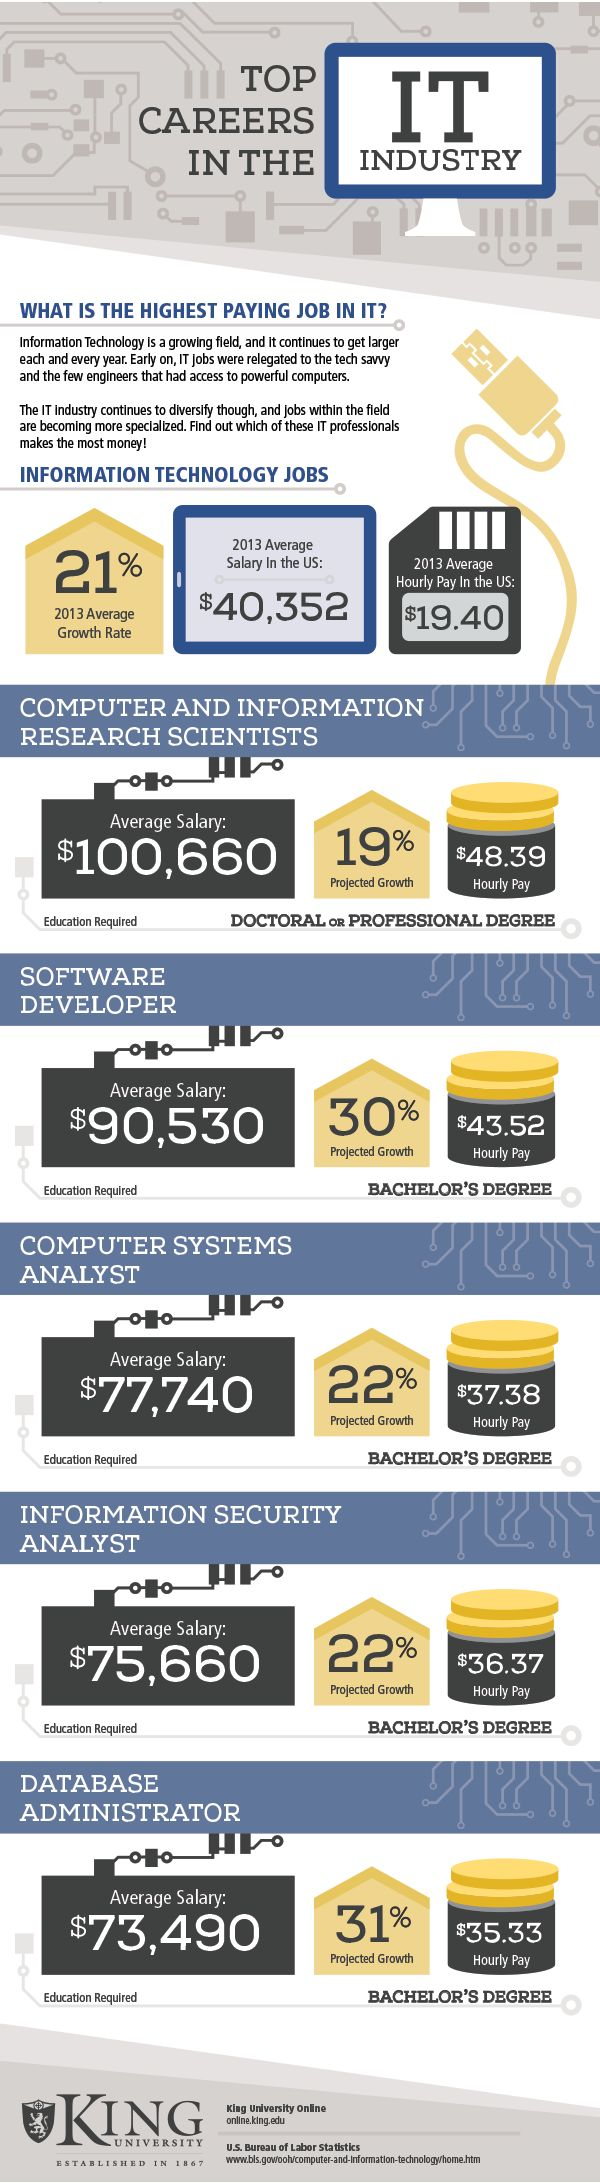 Top-paying IT careers. Remember these are AVERAGE salaries. Your salary offer could be higher or lower depending on the geographic location of the job.